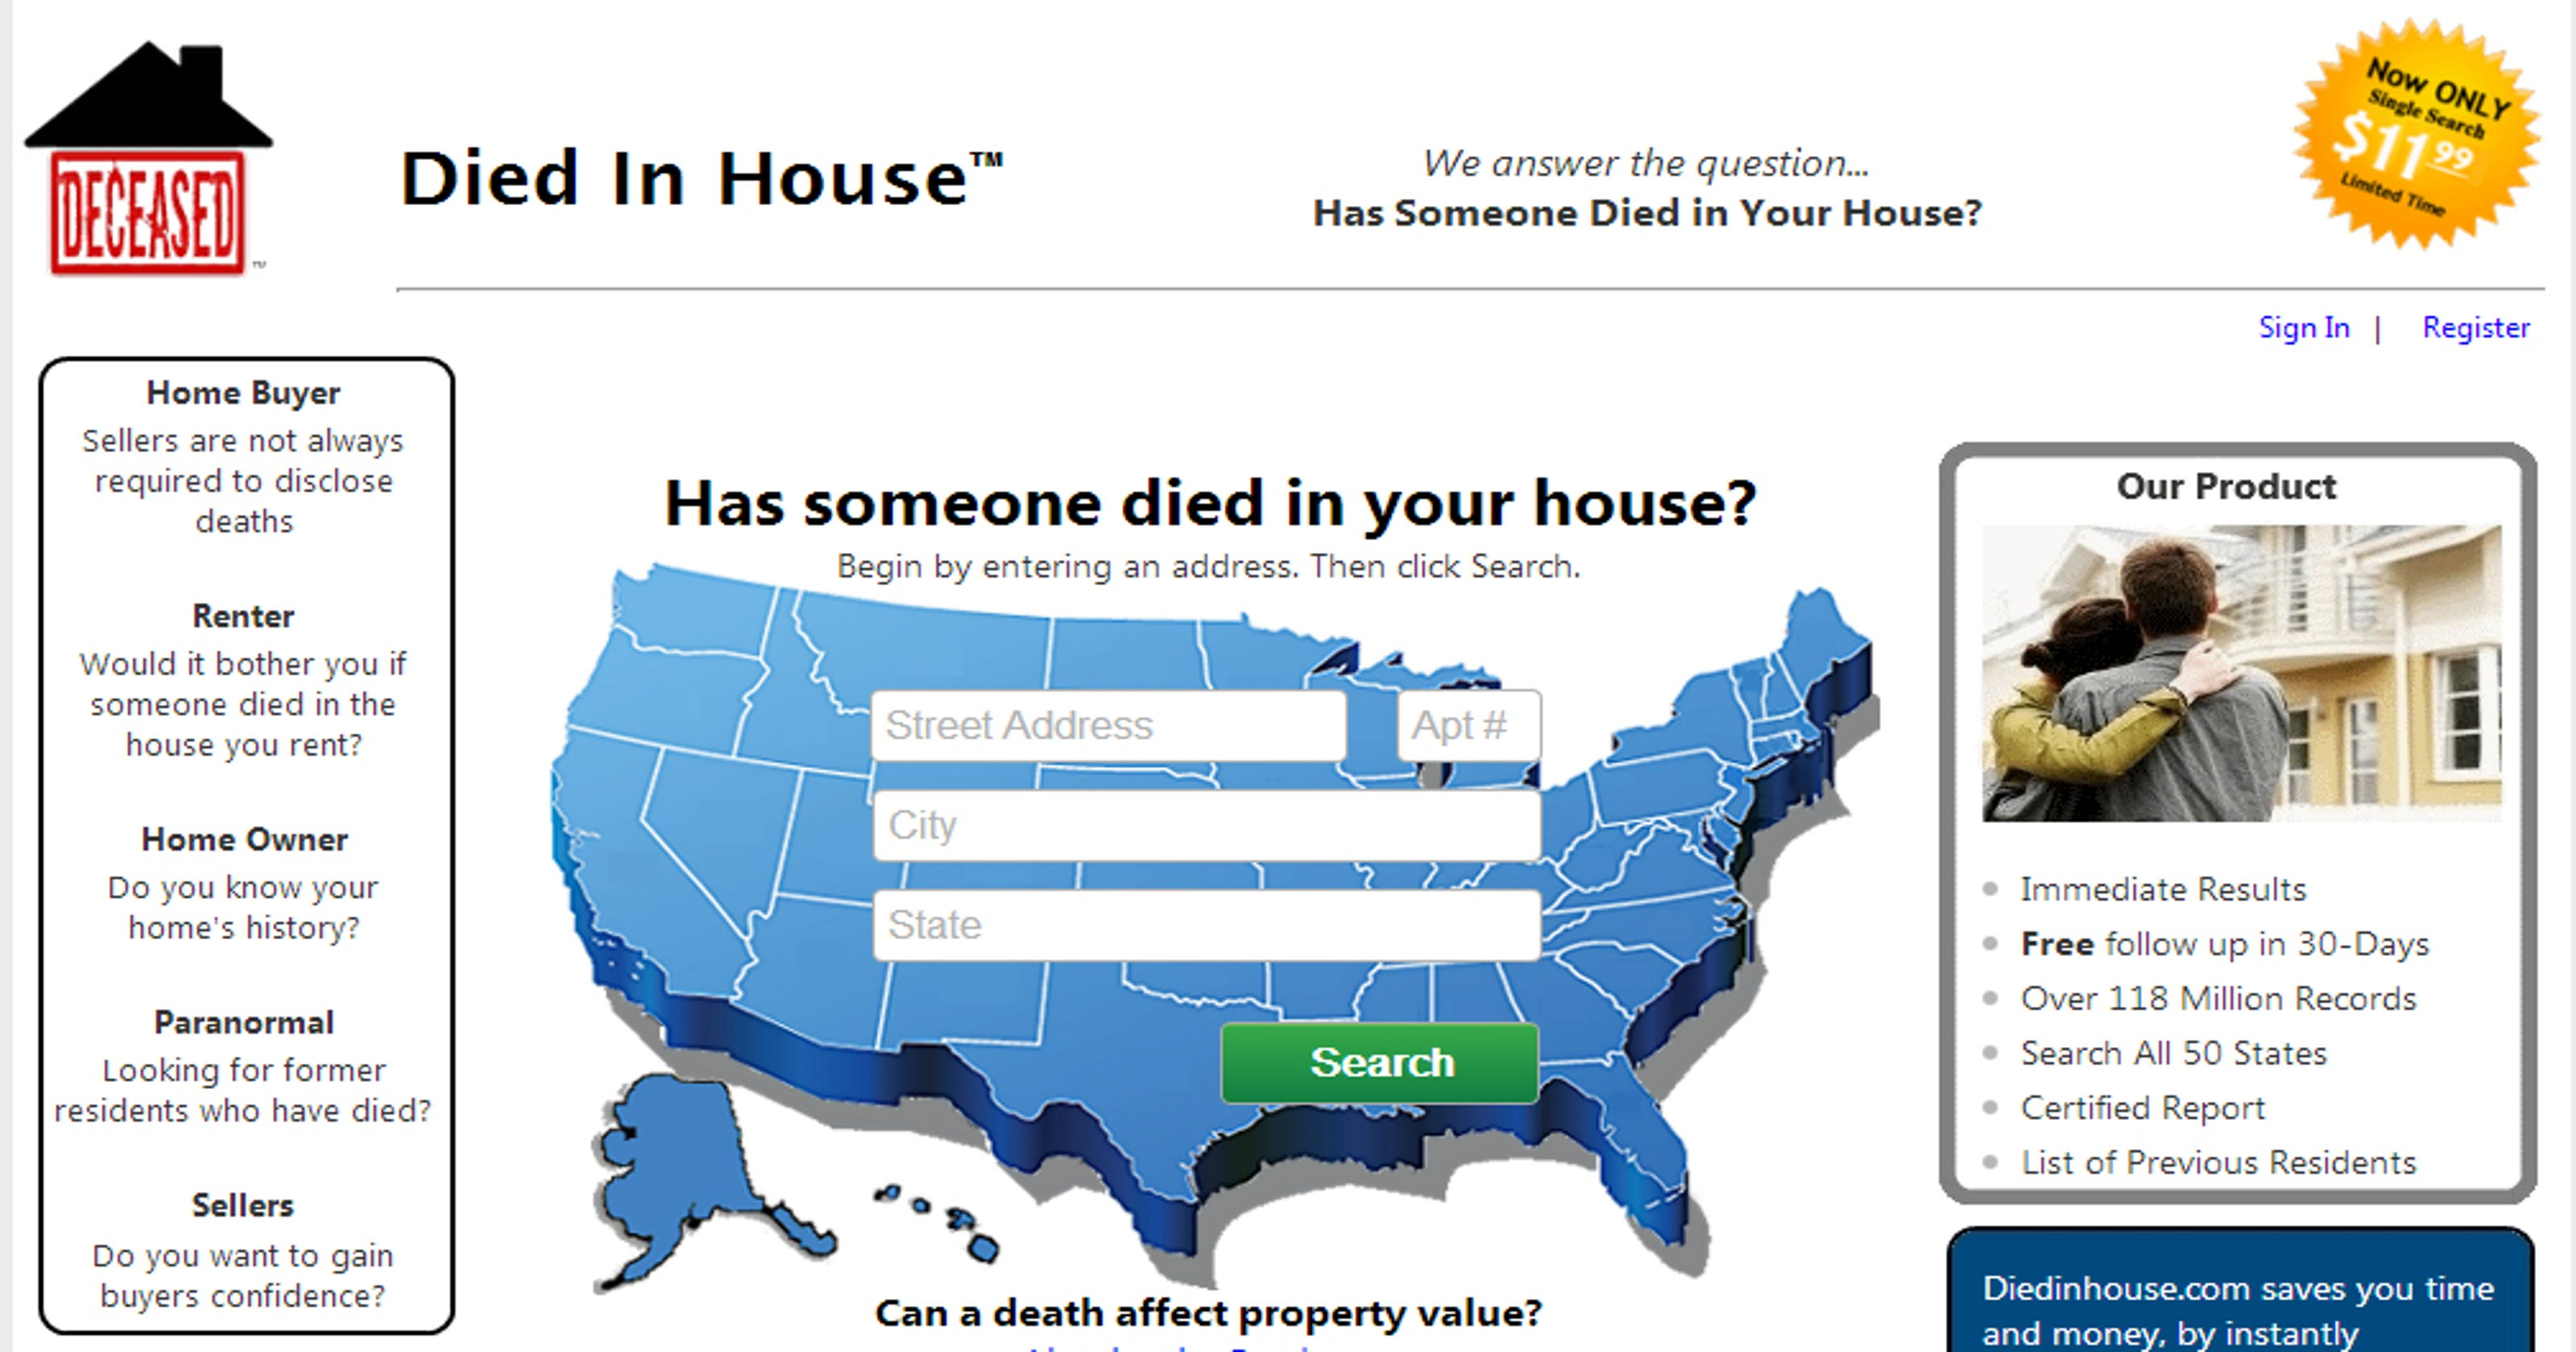 Want to know who died in your home? Check this site